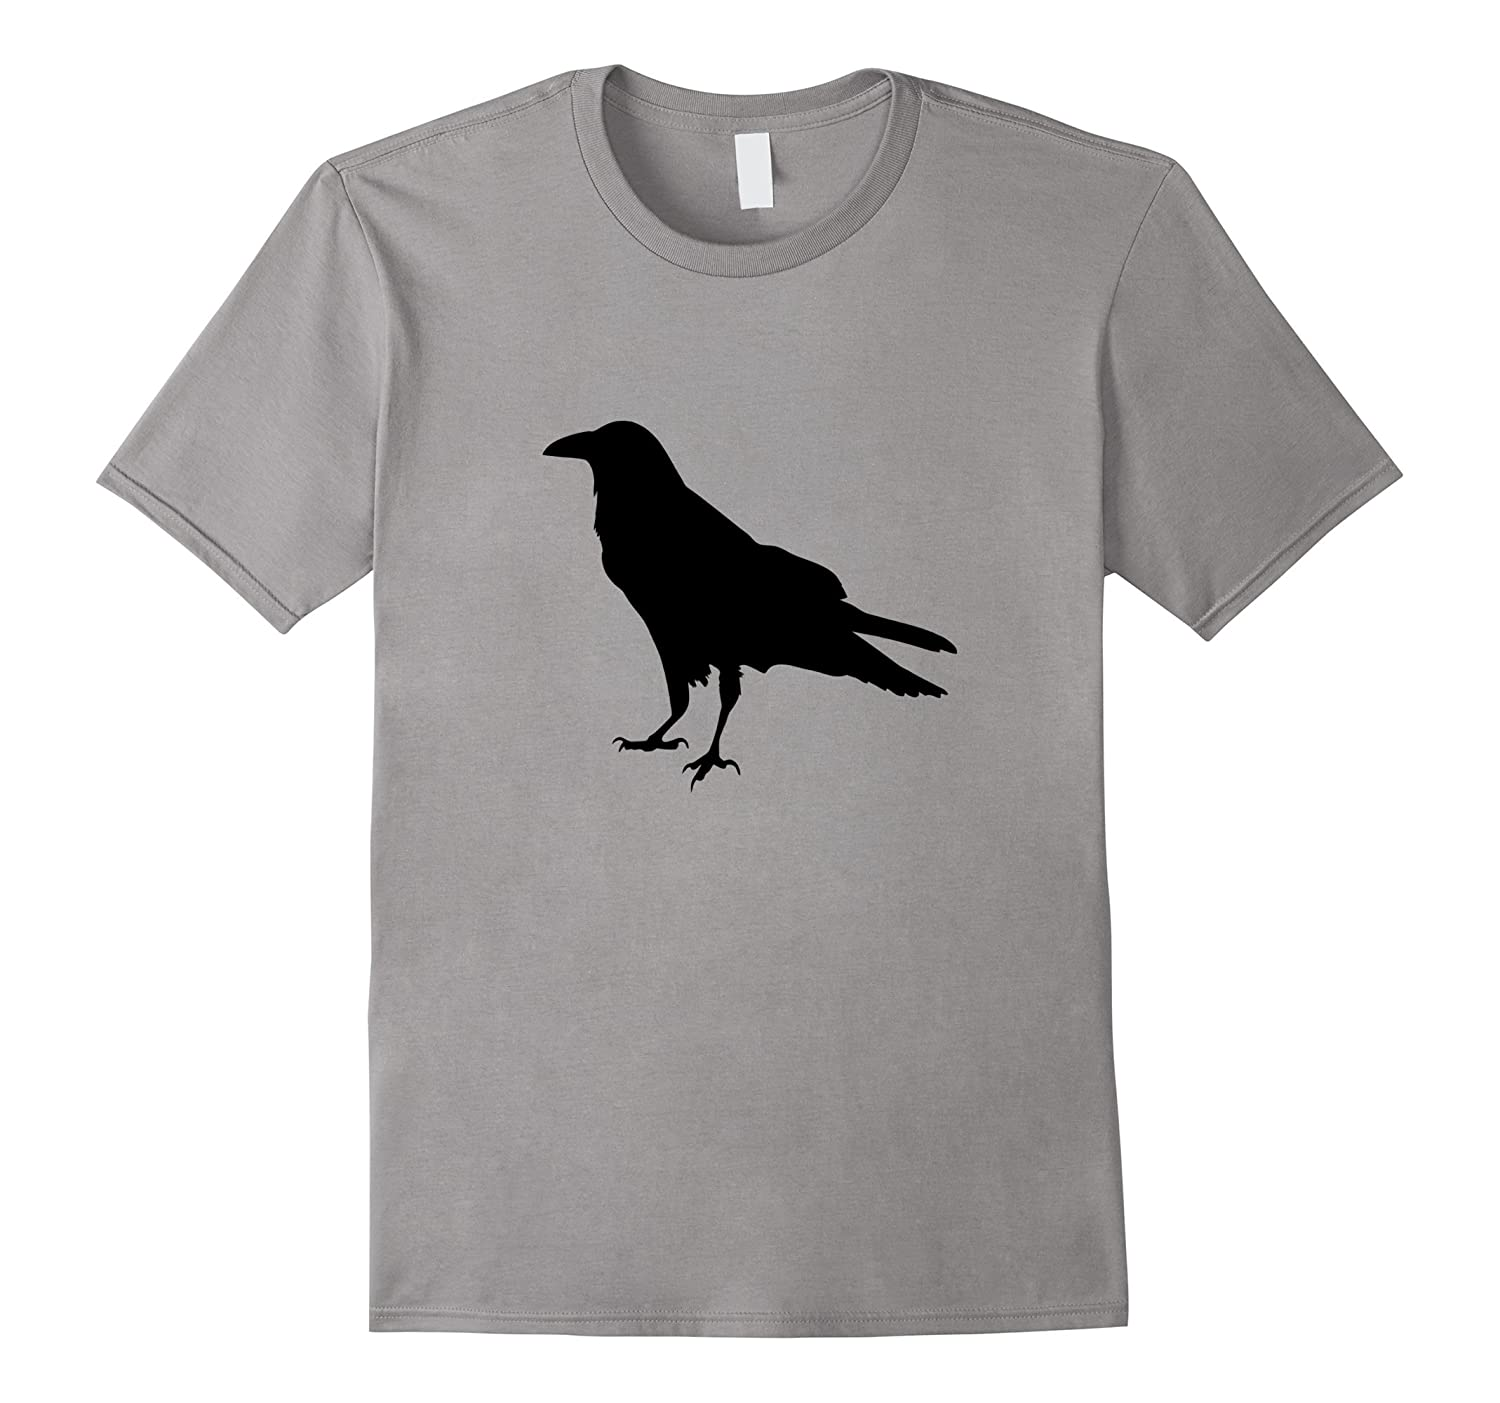 Cool Minimalist Raven or Crow Silhouette Outline T-Shirt-AZP